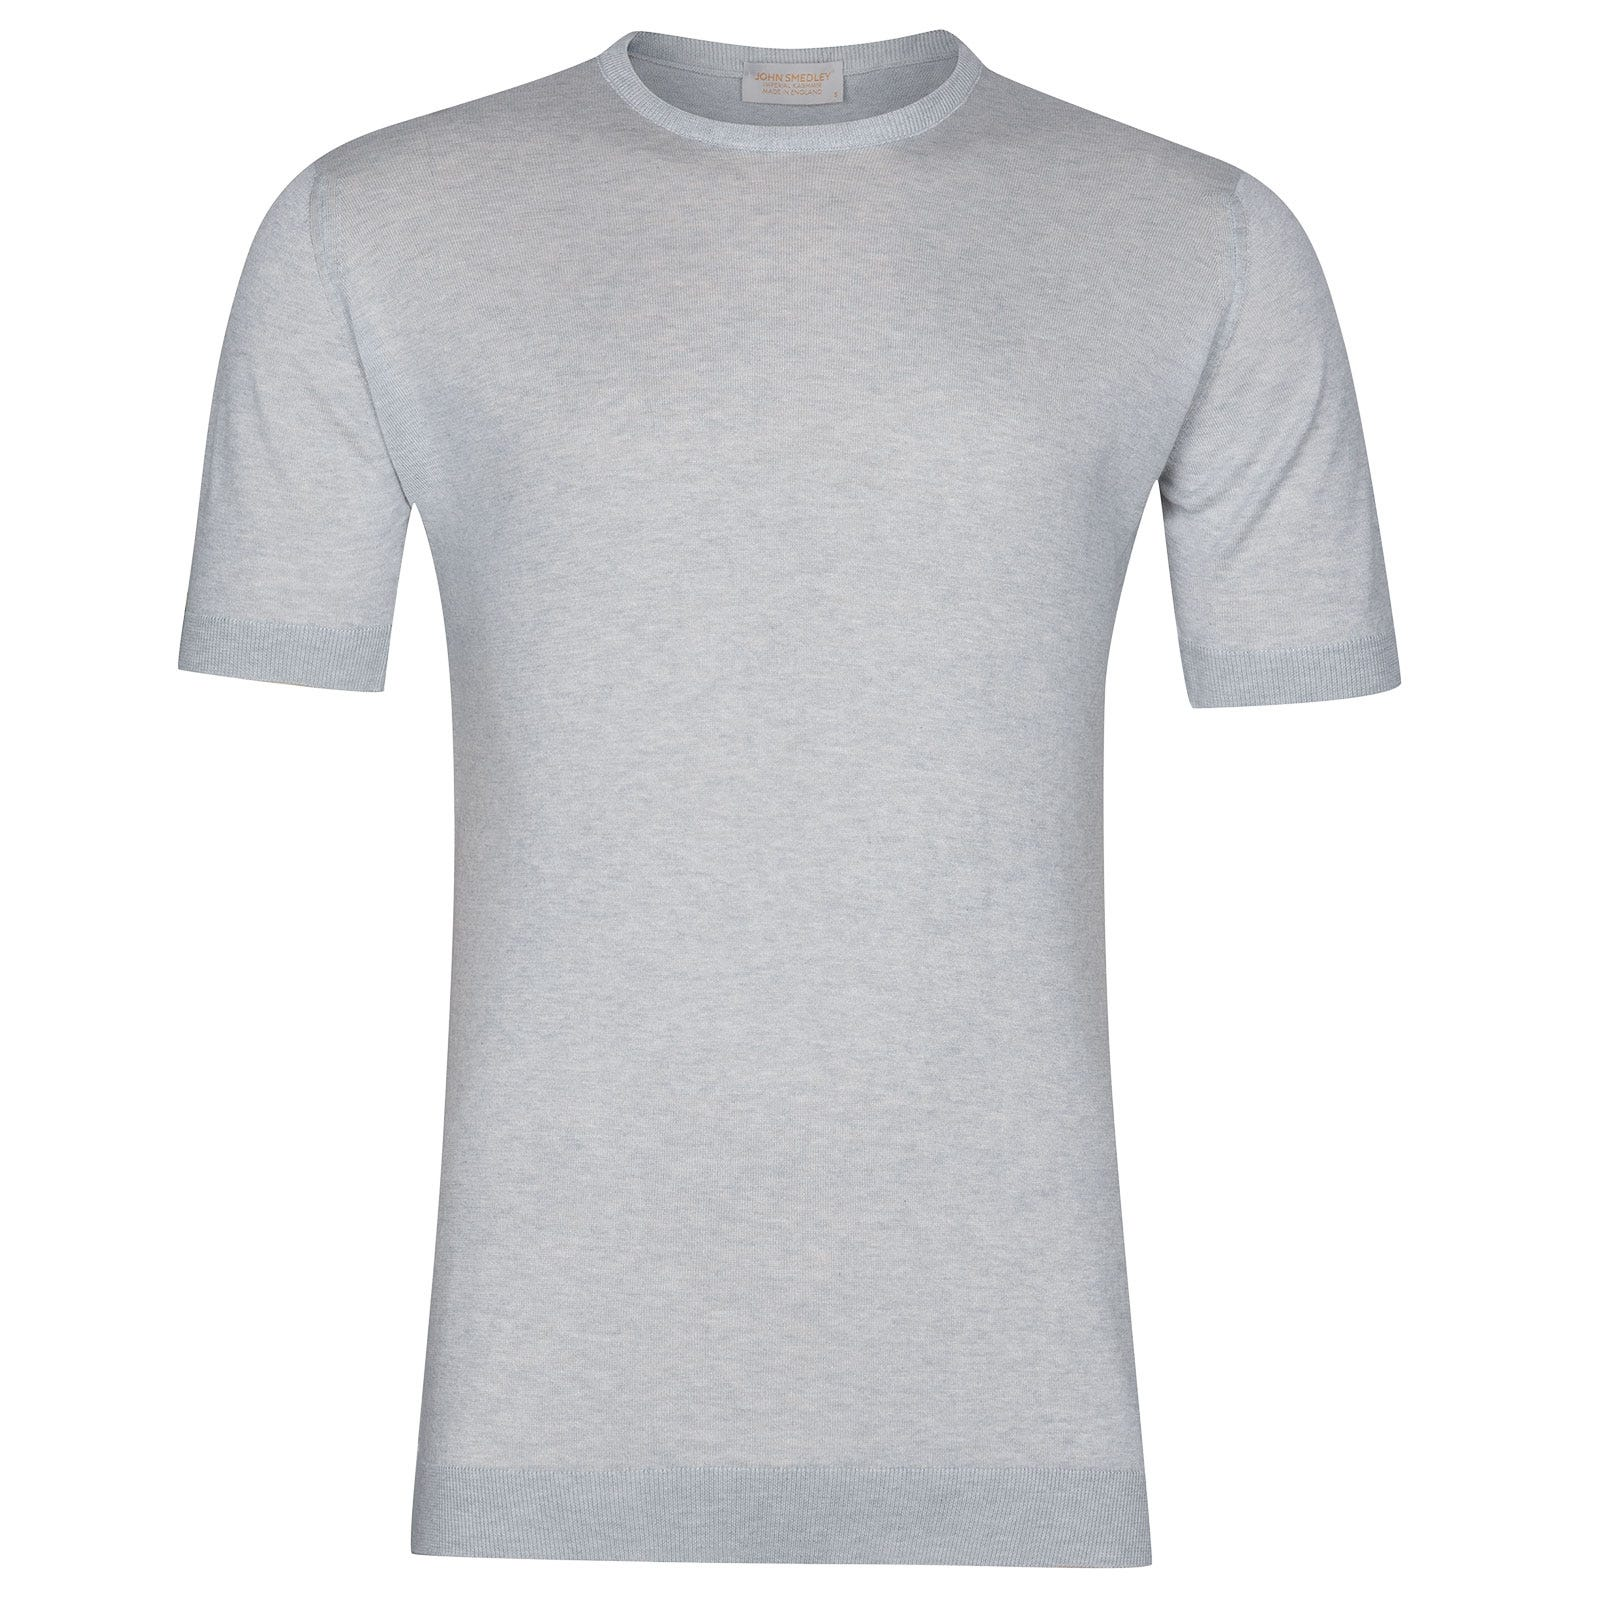 John Smedley Stonwell in Silver T-Shirt-XLG